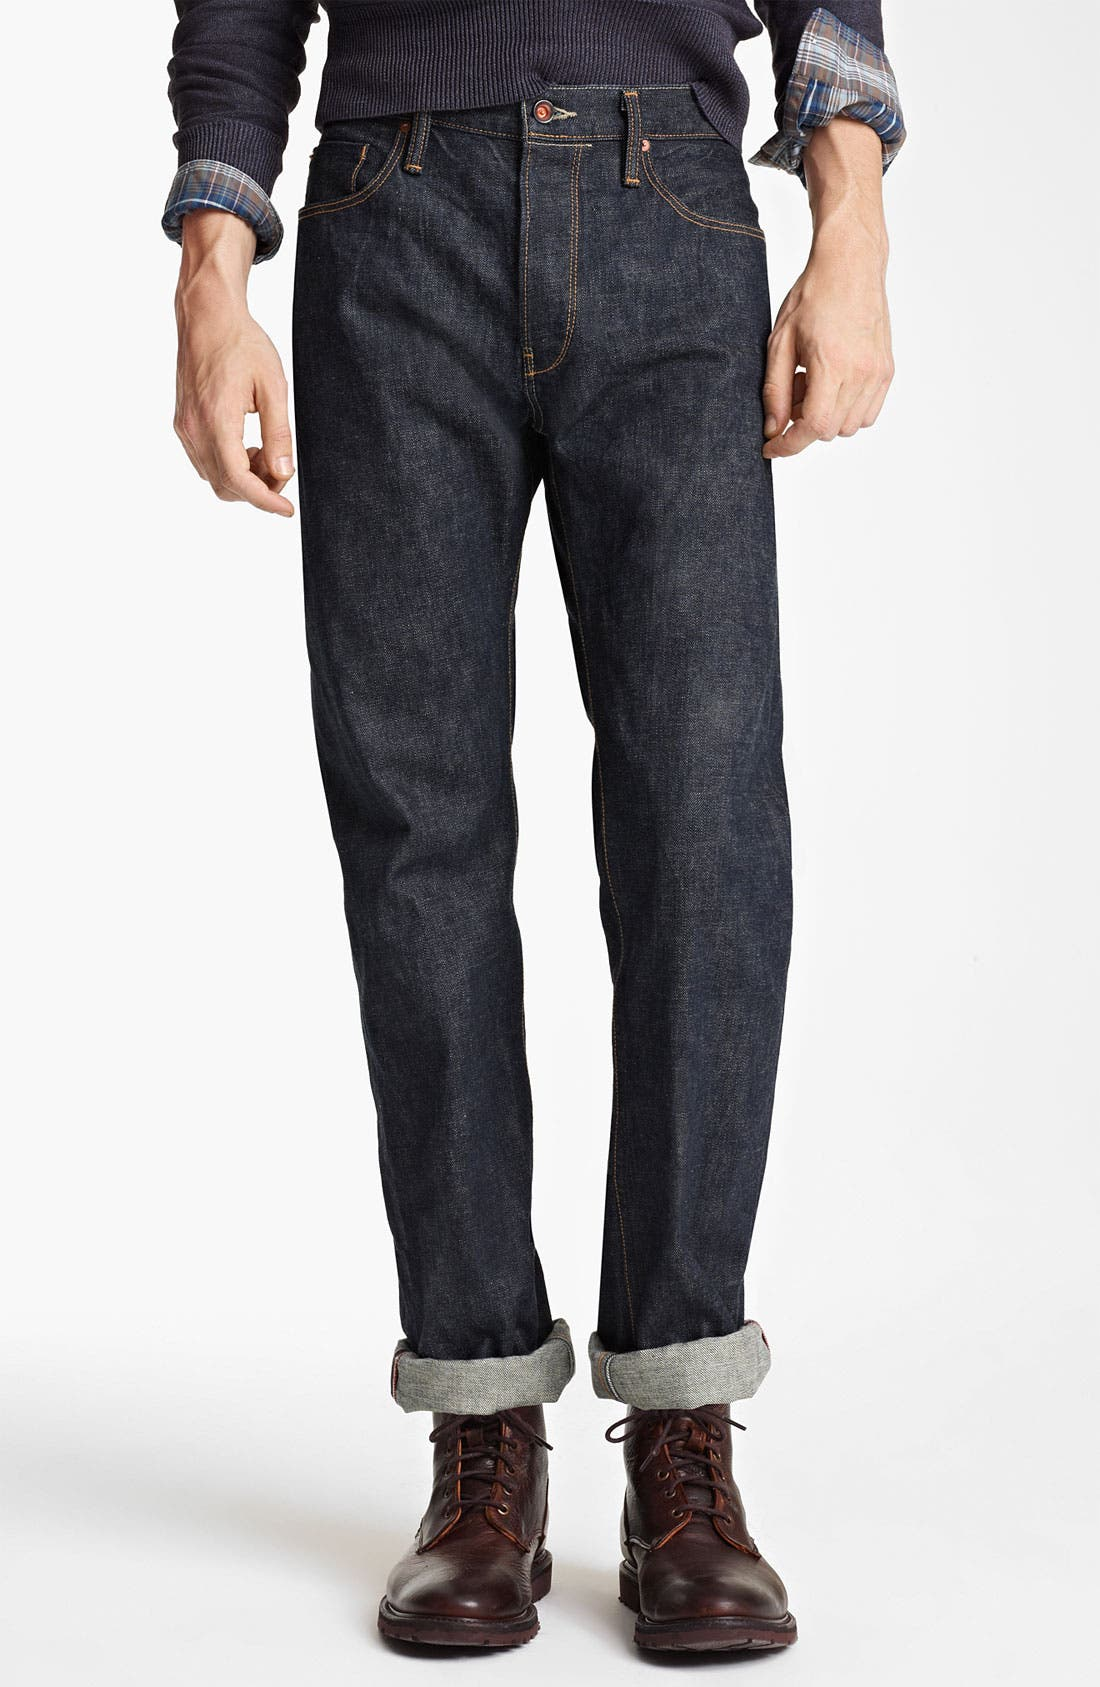 Alternate Image 1 Selected - Todd Snyder Straight Leg Jeans (Indigo)